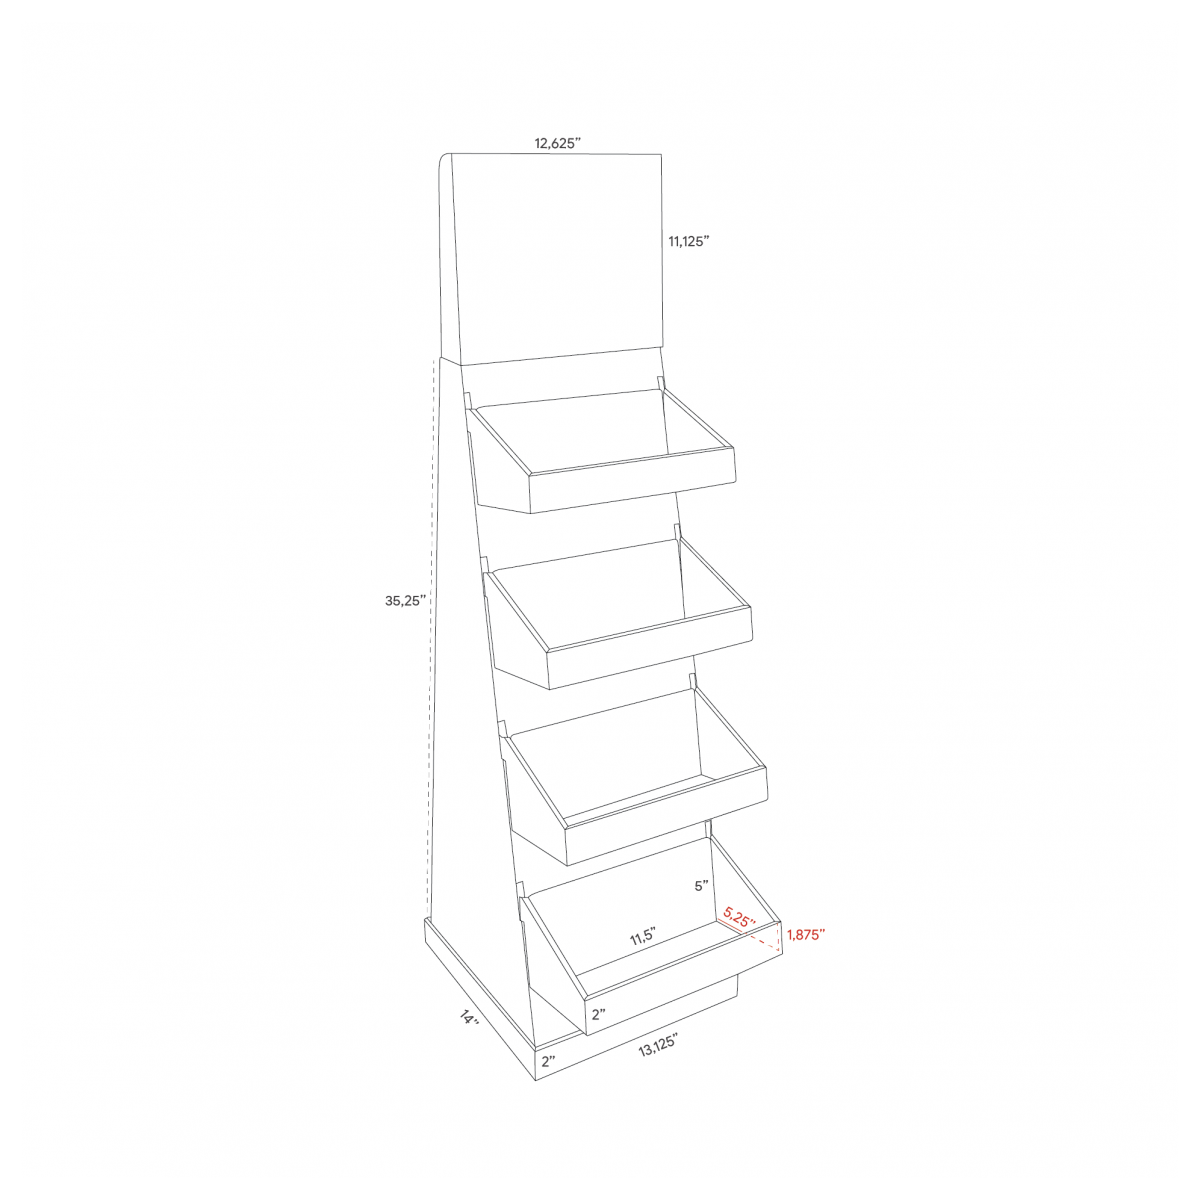 Cardboard floor display with header and 4 trays as shelves (small version) - dimensions